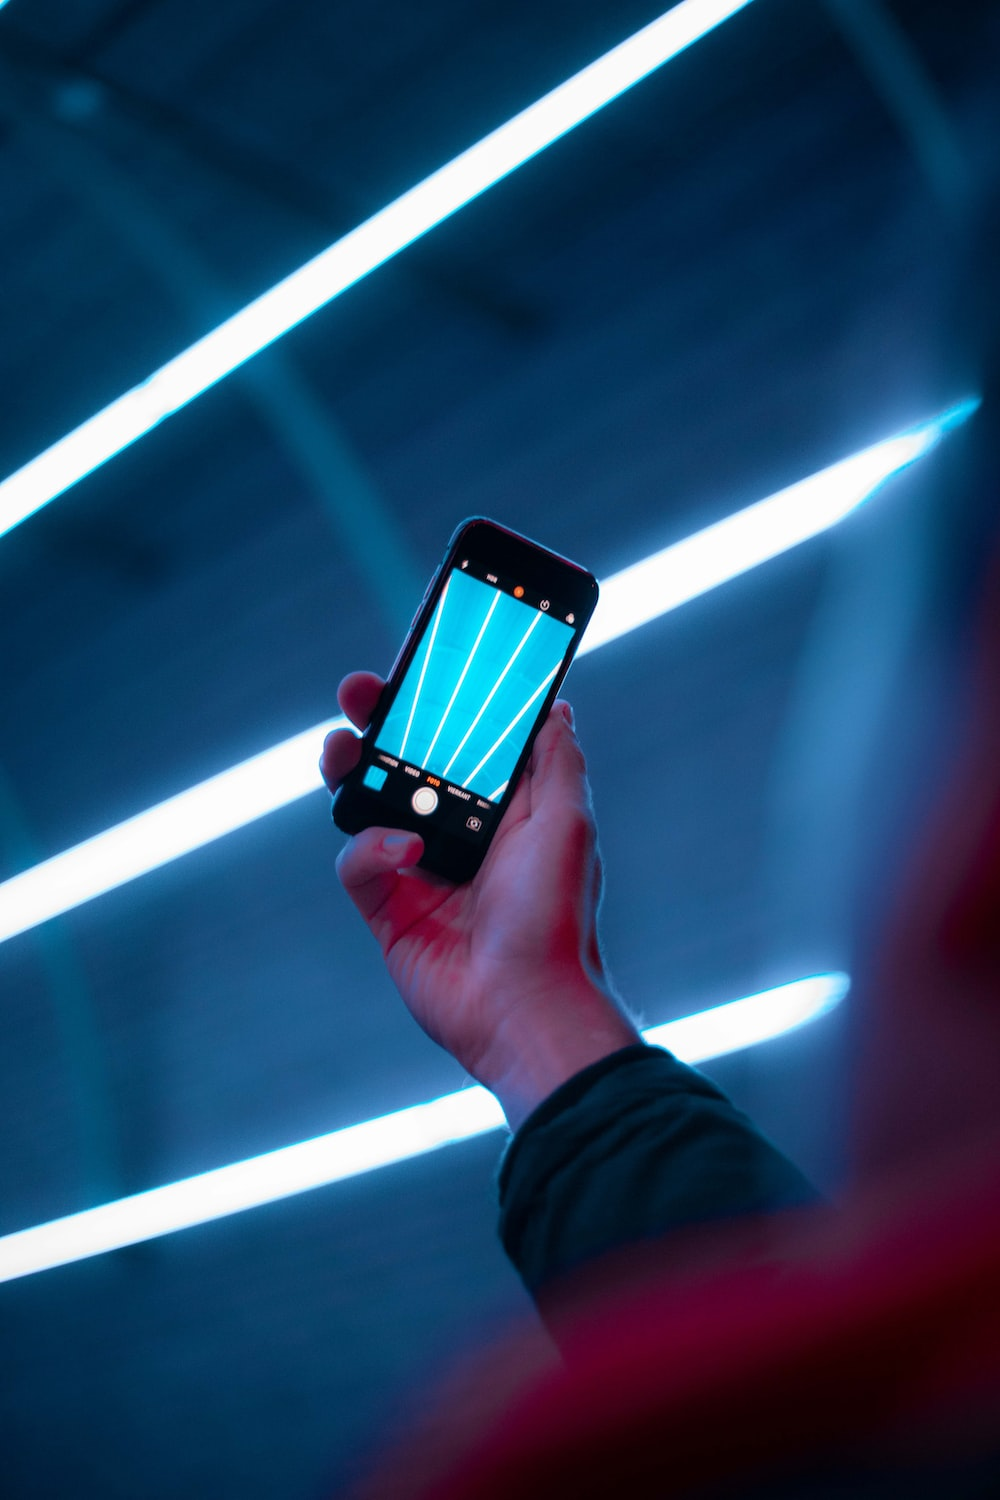 person using smartphone camera displaying lights